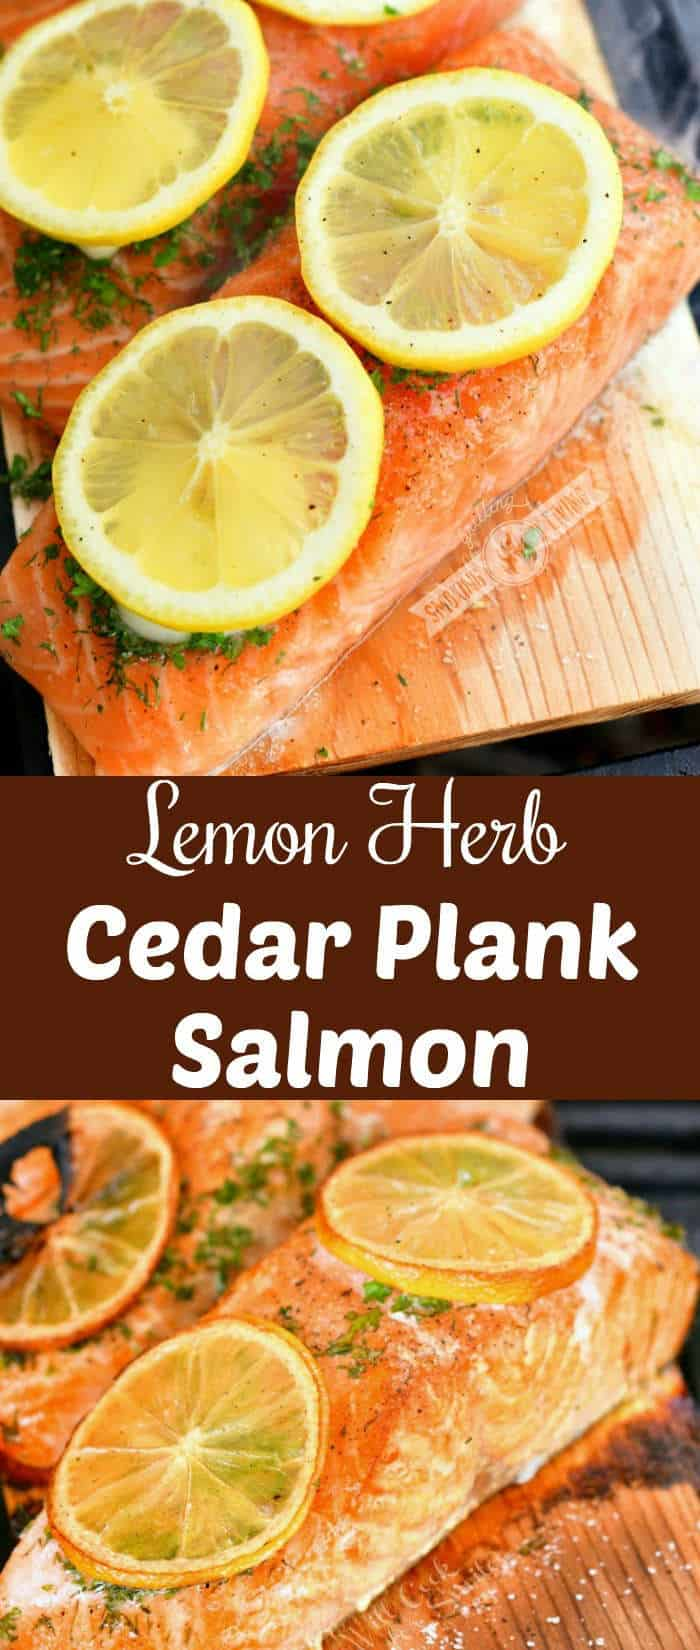 collage of two images of salmon on cedar plank and cooked salmon on the plank below